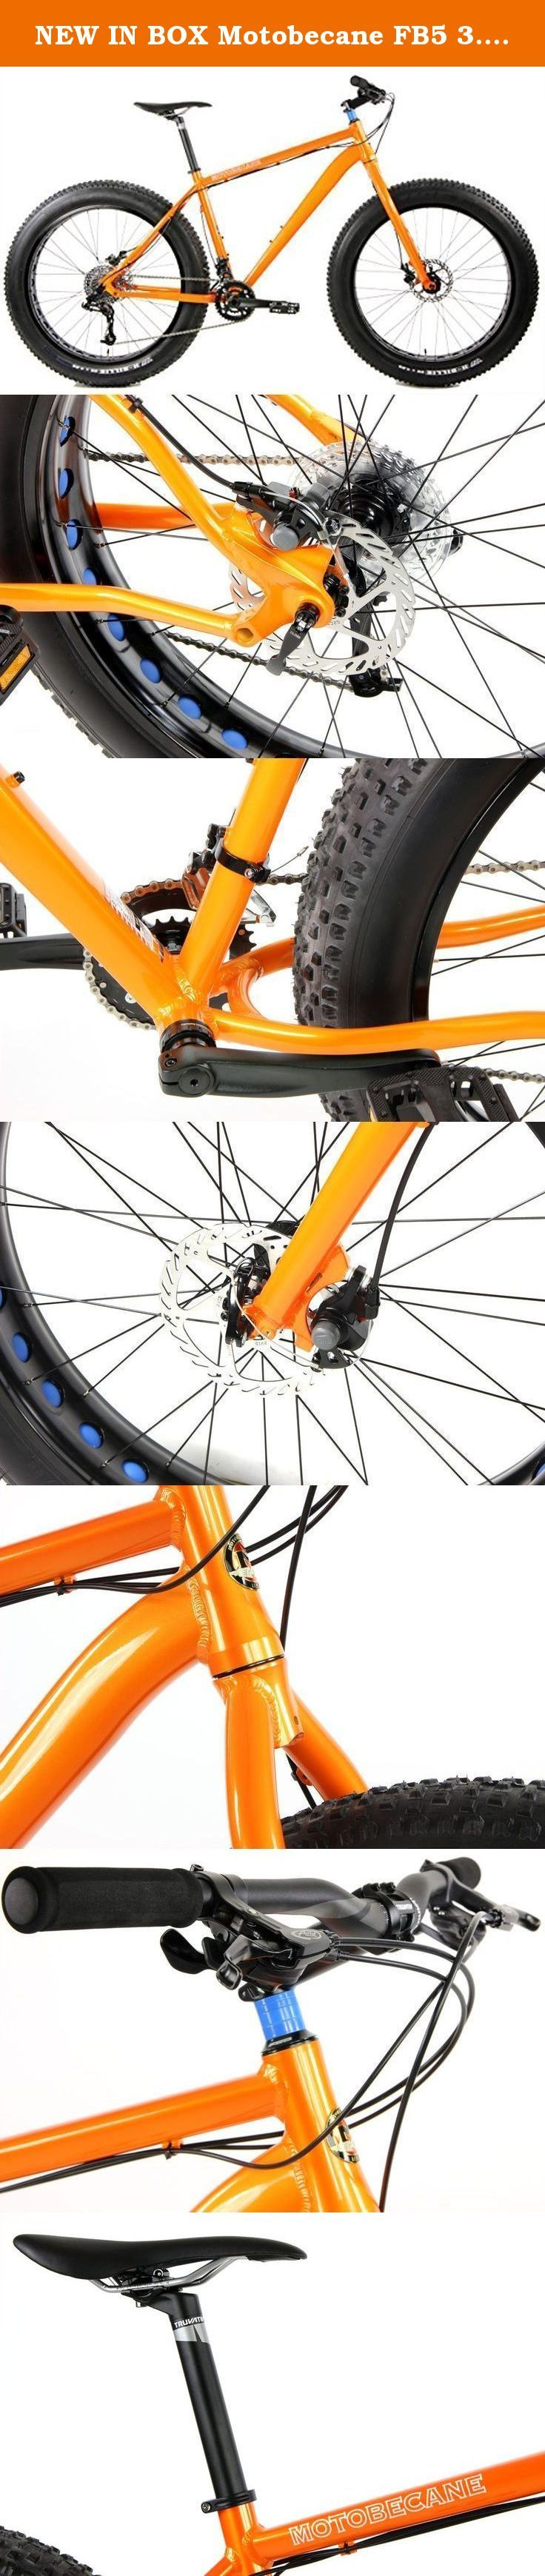 """NEW IN BOX Motobecane FB5 3.0 26 inch Wheel Bike Disc Brake Fat Bike (Orange, 19in). The hottest trend in the mountain biking world right now. Fat bikes are hard to miss. Their giant, """"fat"""" tires roll over virtually anything, which makes them an ideal winter mode of transportation. Frame Bluto Ready Frames with Tapered Headtubes, ALLOY 6061 FRAME, W/DISC MOUNT, TIG WELD, replaceable rear derailleur hanger, H2O bosses, 12x197mm Rear axle spacing Fork 26"""" RIGID FORK, ALLOY STEM, 1.5 to…"""